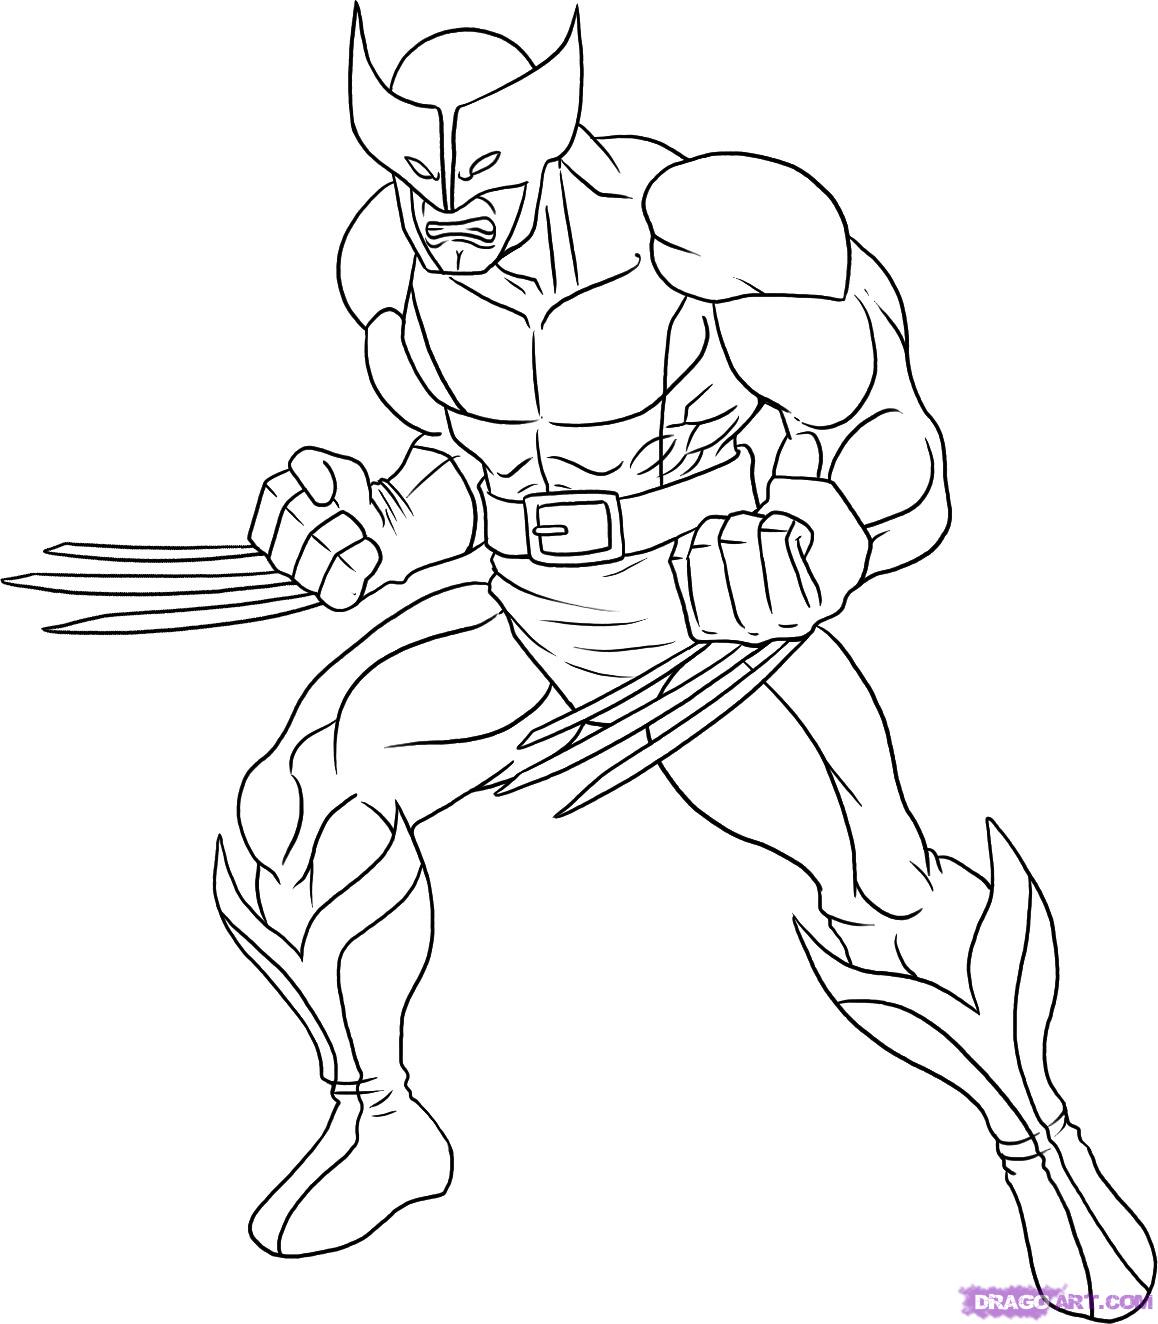 1158x1324 Wolverine Cartoon Drawing How To Draw Wolverine, Step By Step